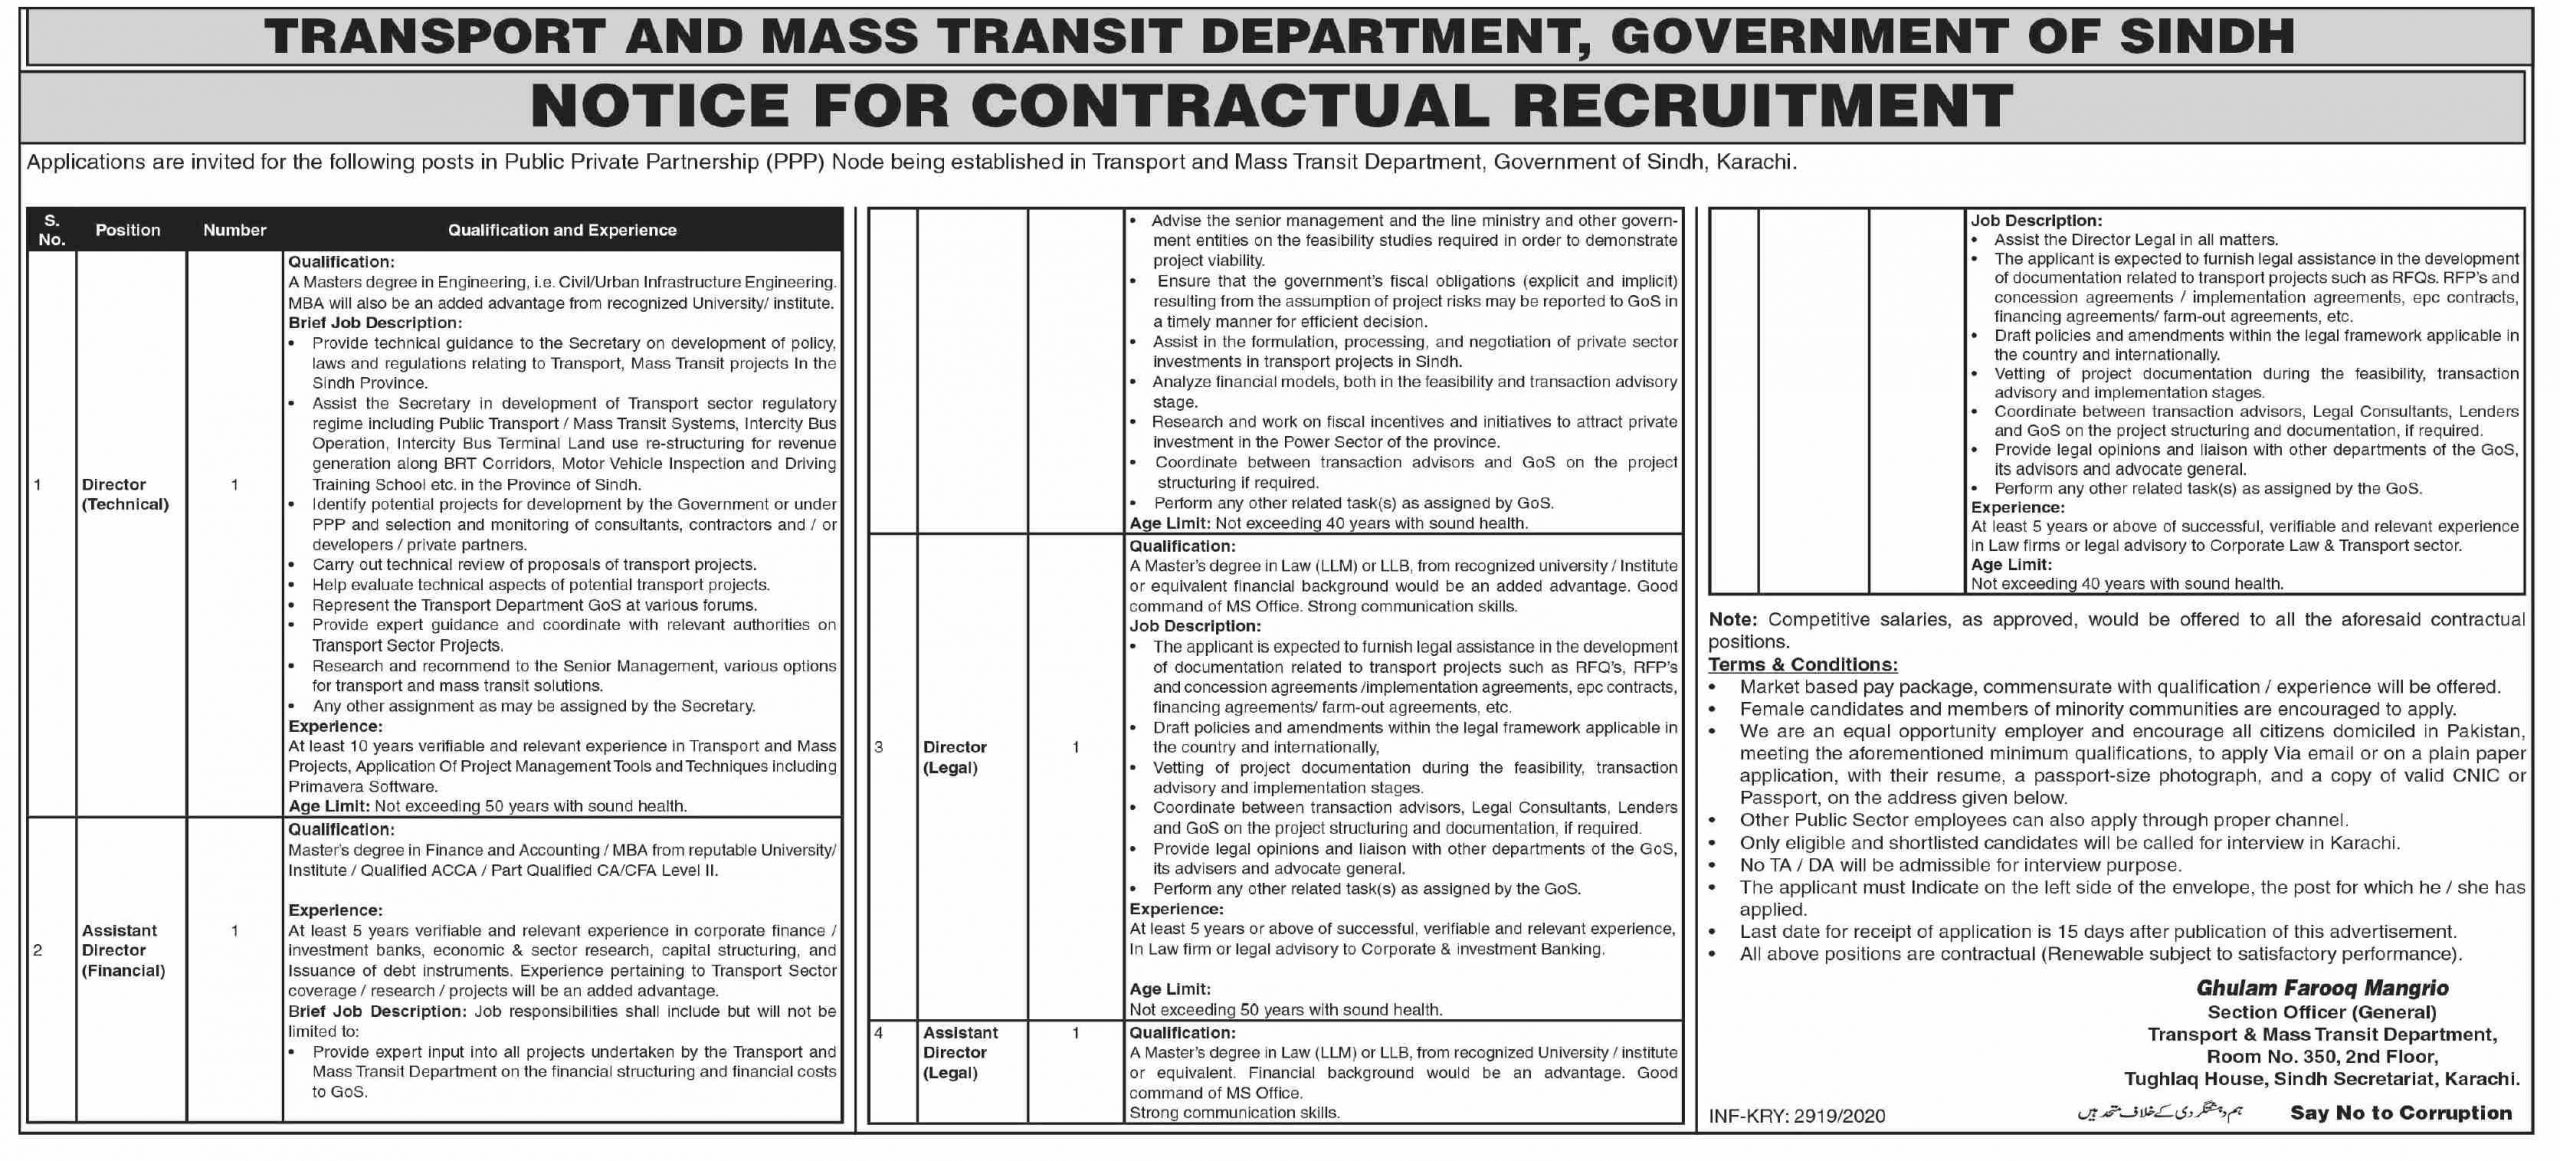 Transport and Mass Transit Department Government of Sindh Jobs October 2020